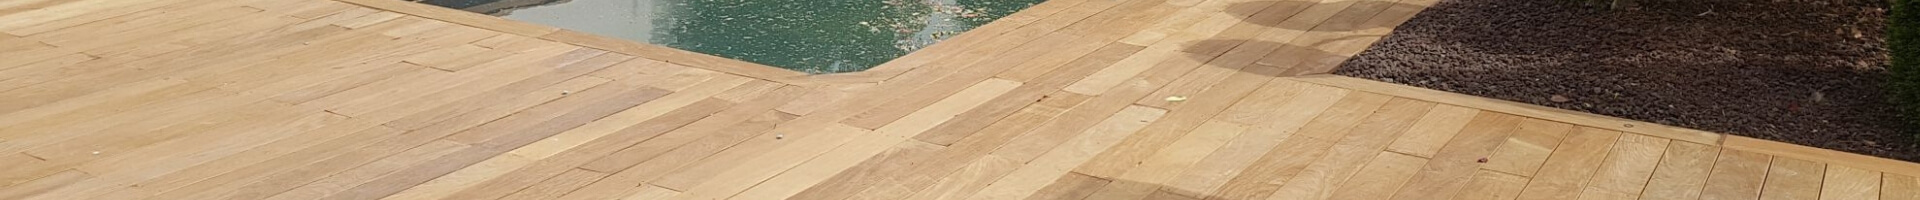 Parquet Chene Massif Easiklip Clipsable Naturel 18 X 150 Mm